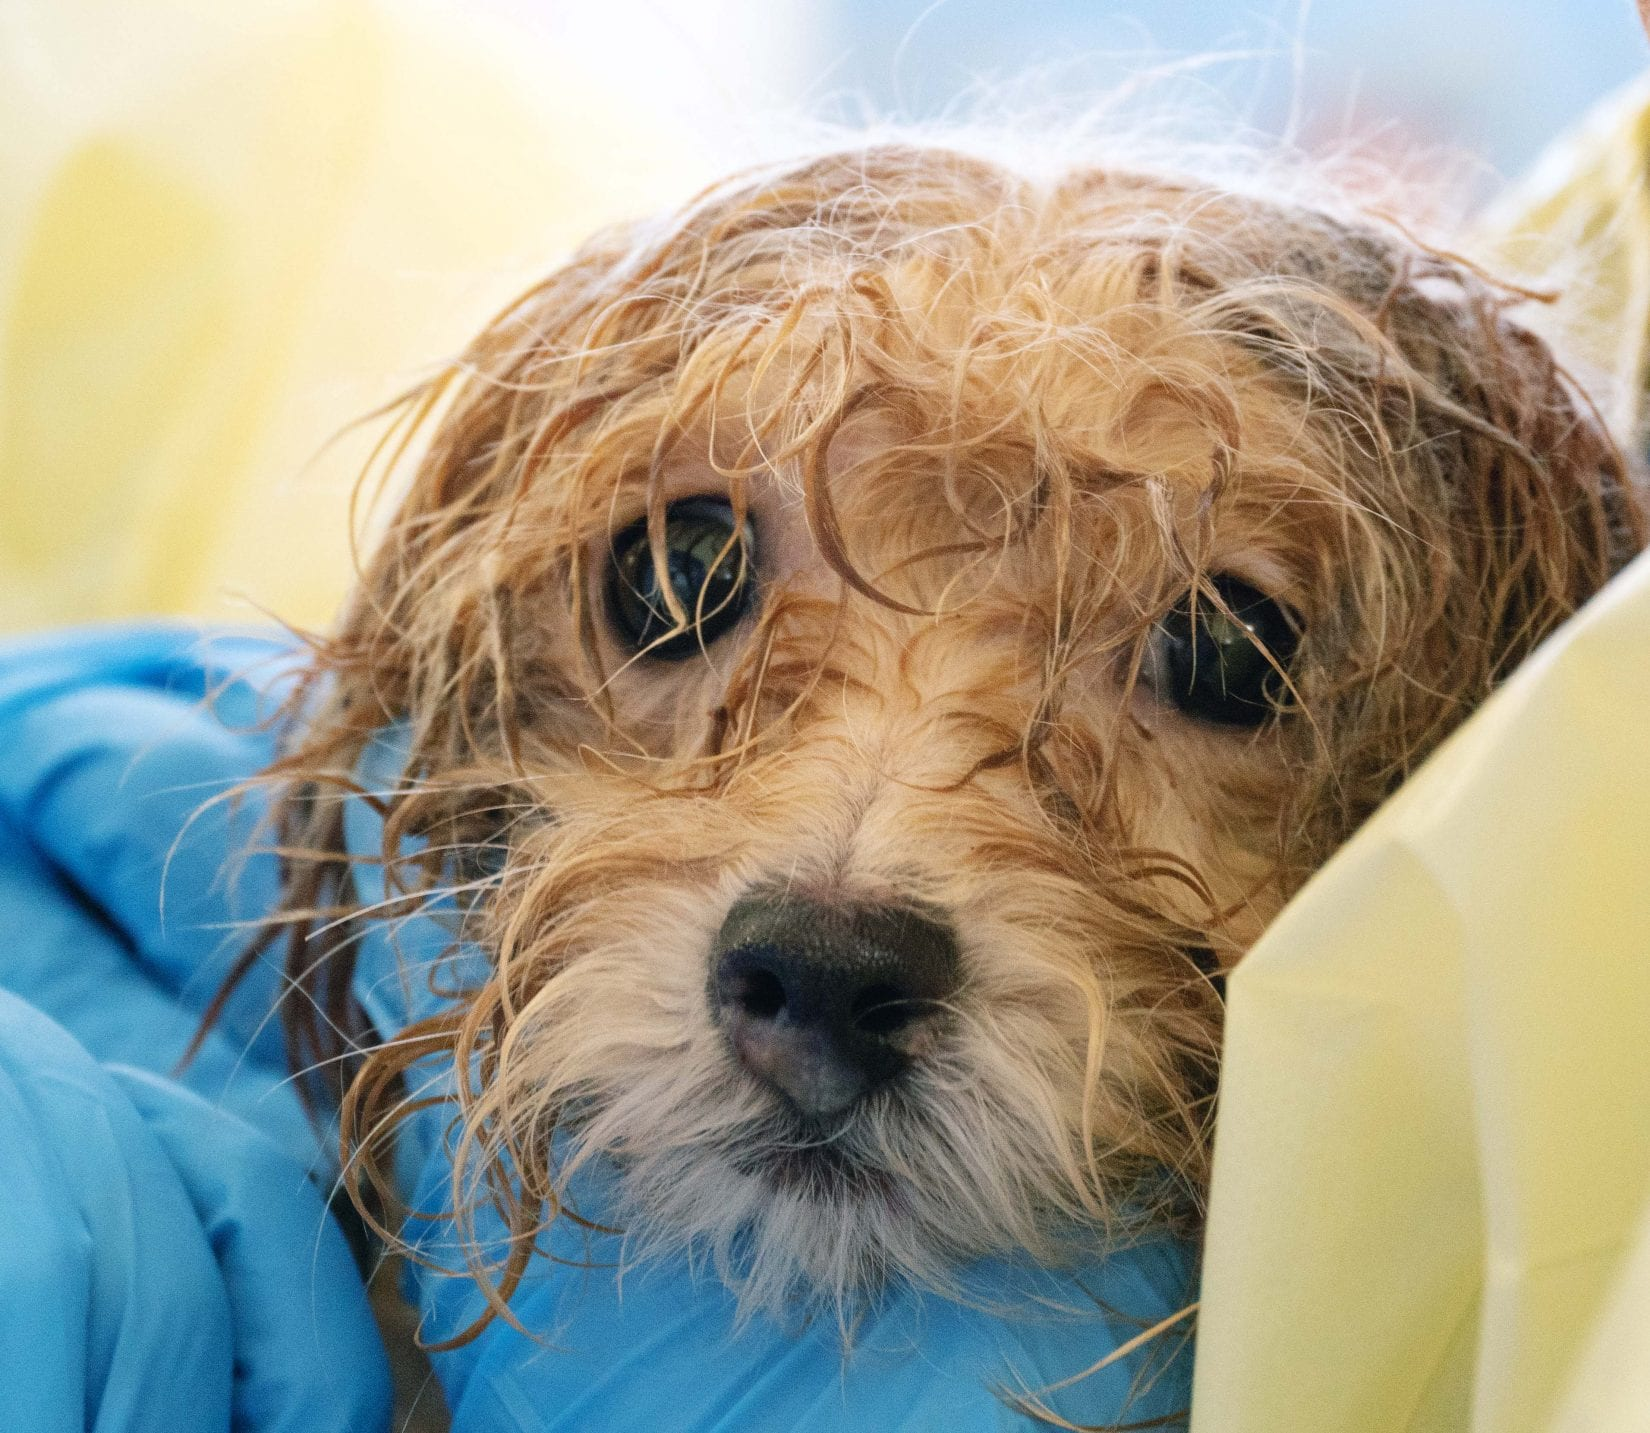 BC SPCA rescues 45 Havanese dogs on Vancouver Island | BC SPCA